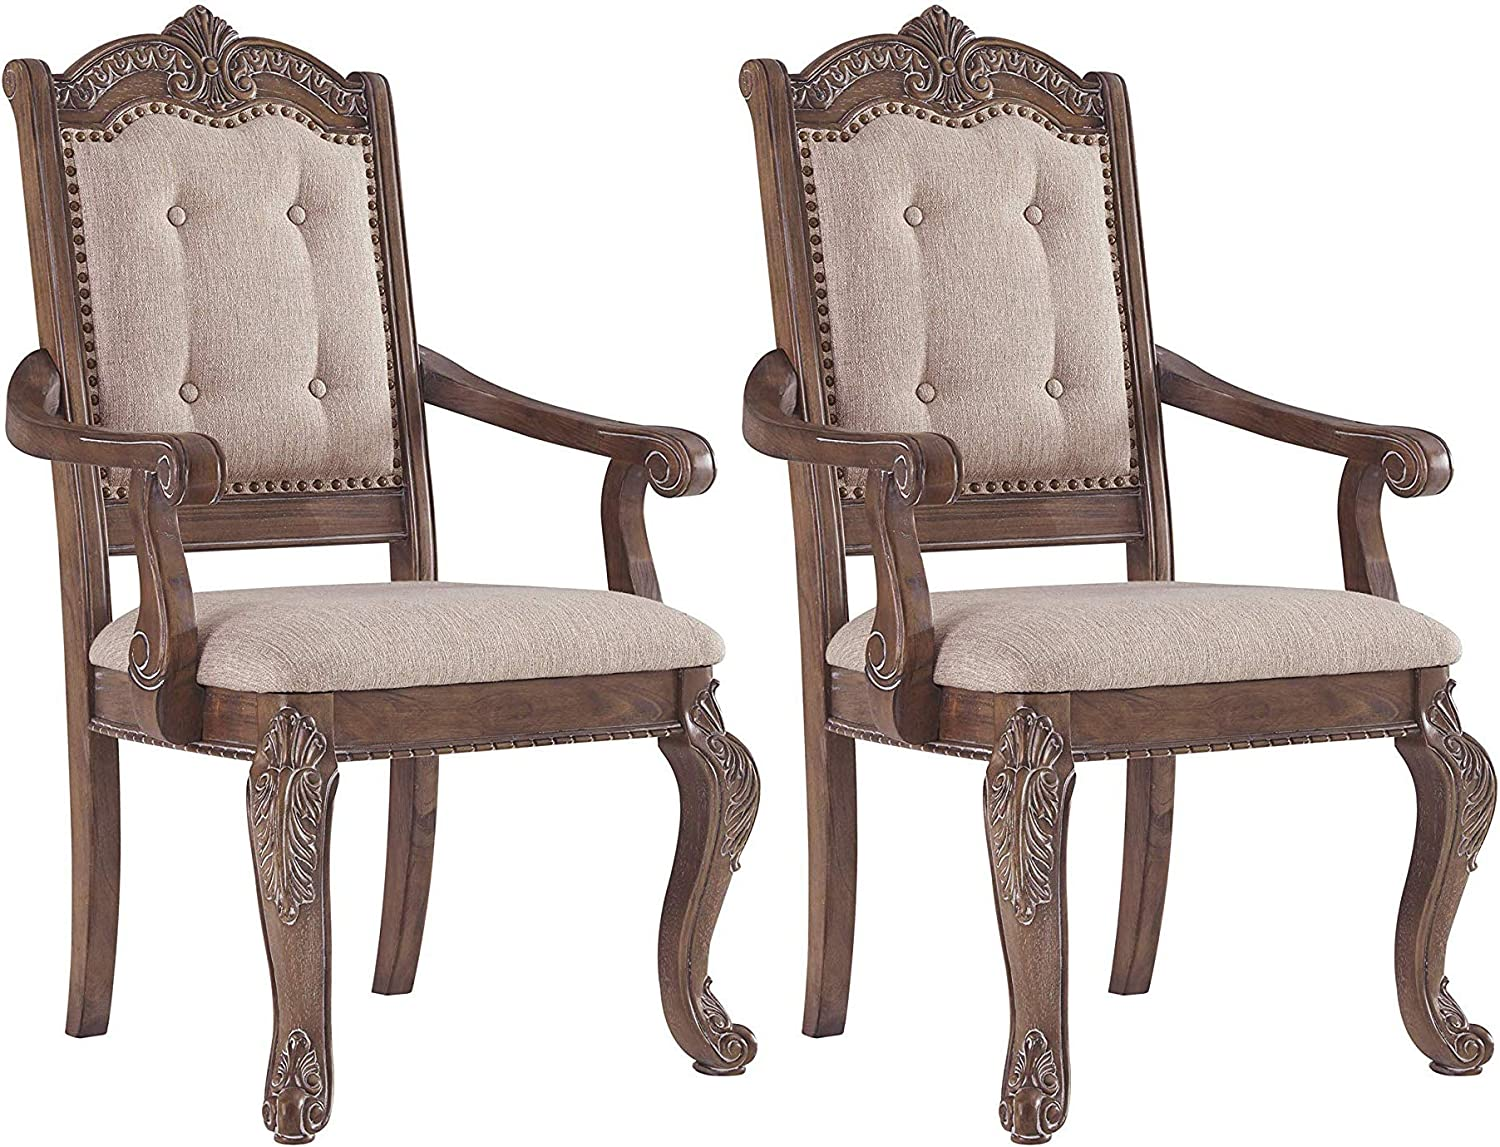 Signature Design By Ashley - Charmond Dining Upholstered Arm Chair - Set of 2 - Traditional Style - Brown